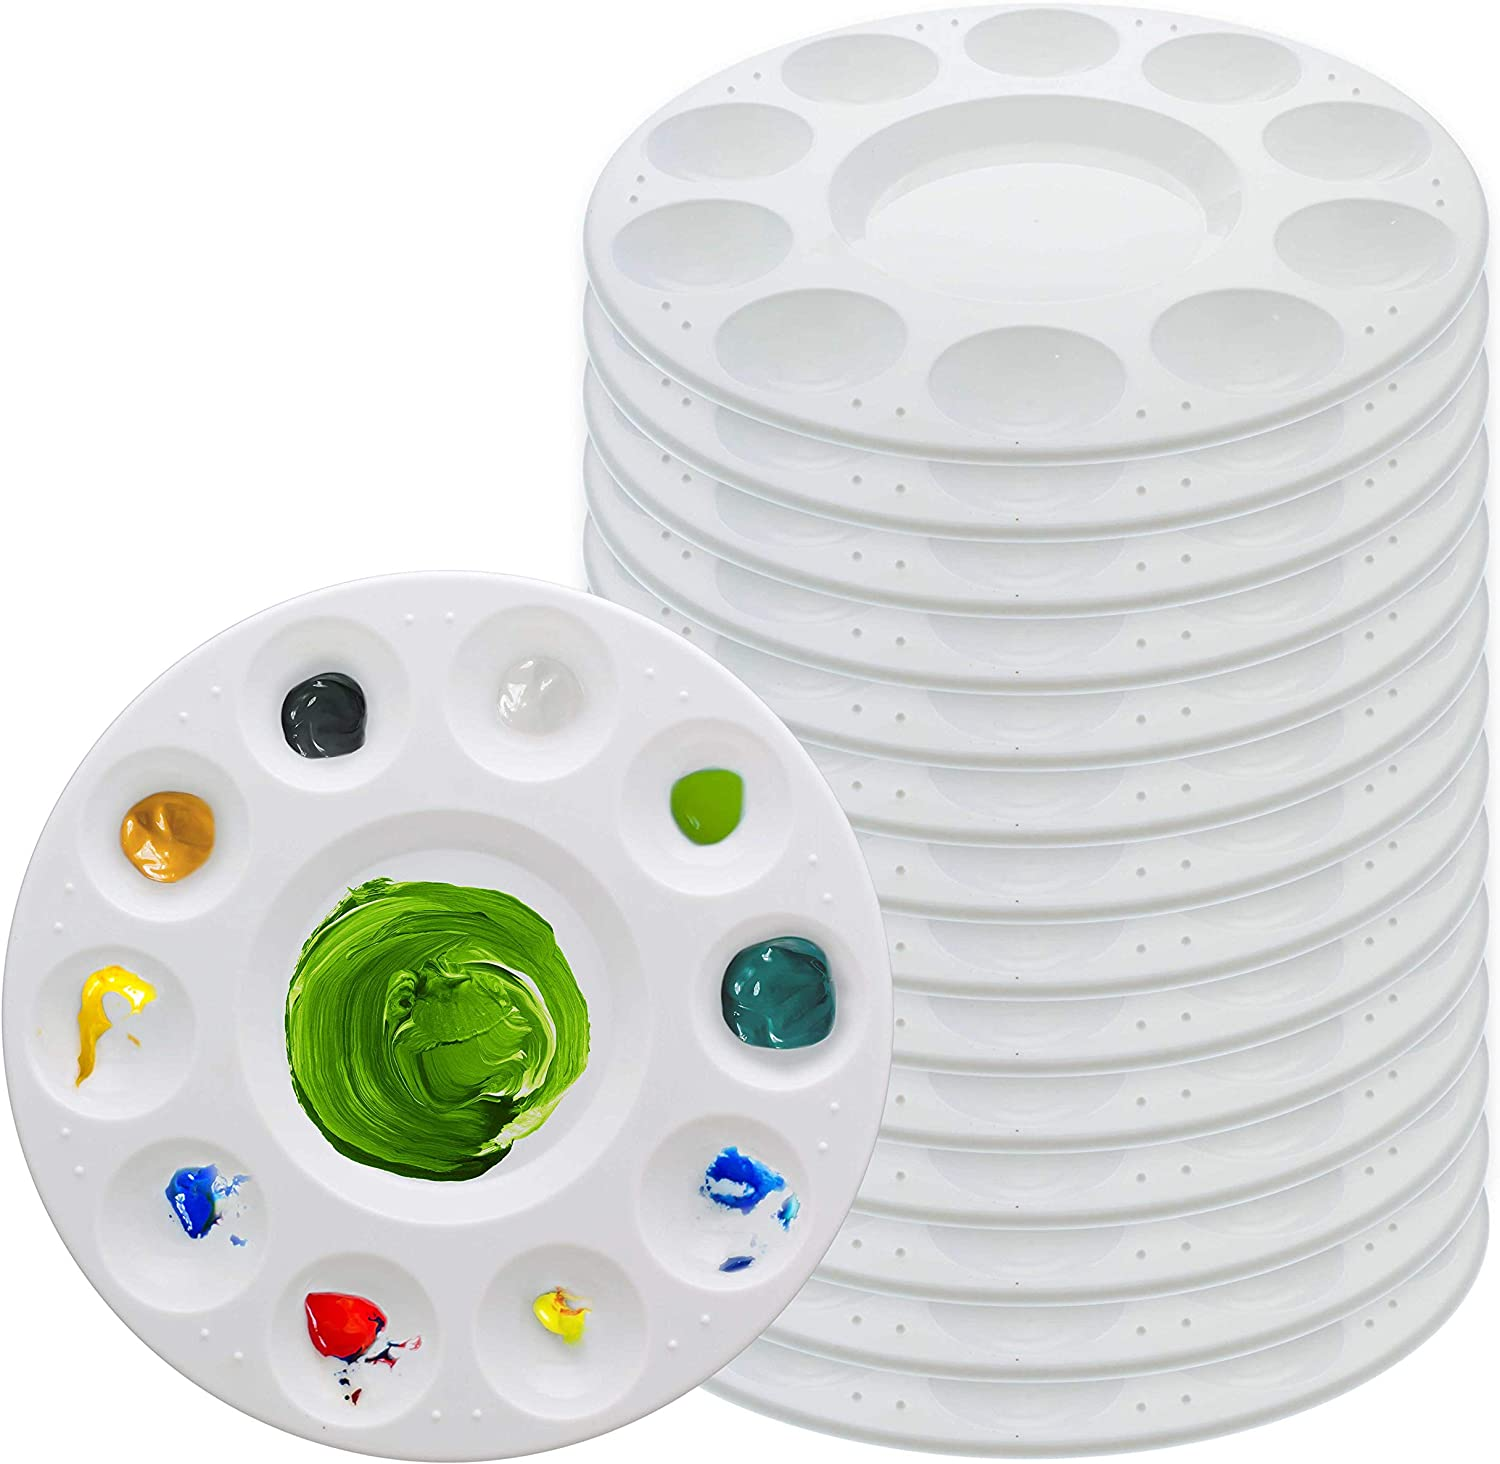 U.S. Art Supply 11-Well Round Plastic Artist Painting Palette (Pack of 15) - Paint Color Mixing Trays - Fun Kids Parties, Art Students, Classroom, Craft Projects - Brush Mix Acrylic, Oil, Watercolor